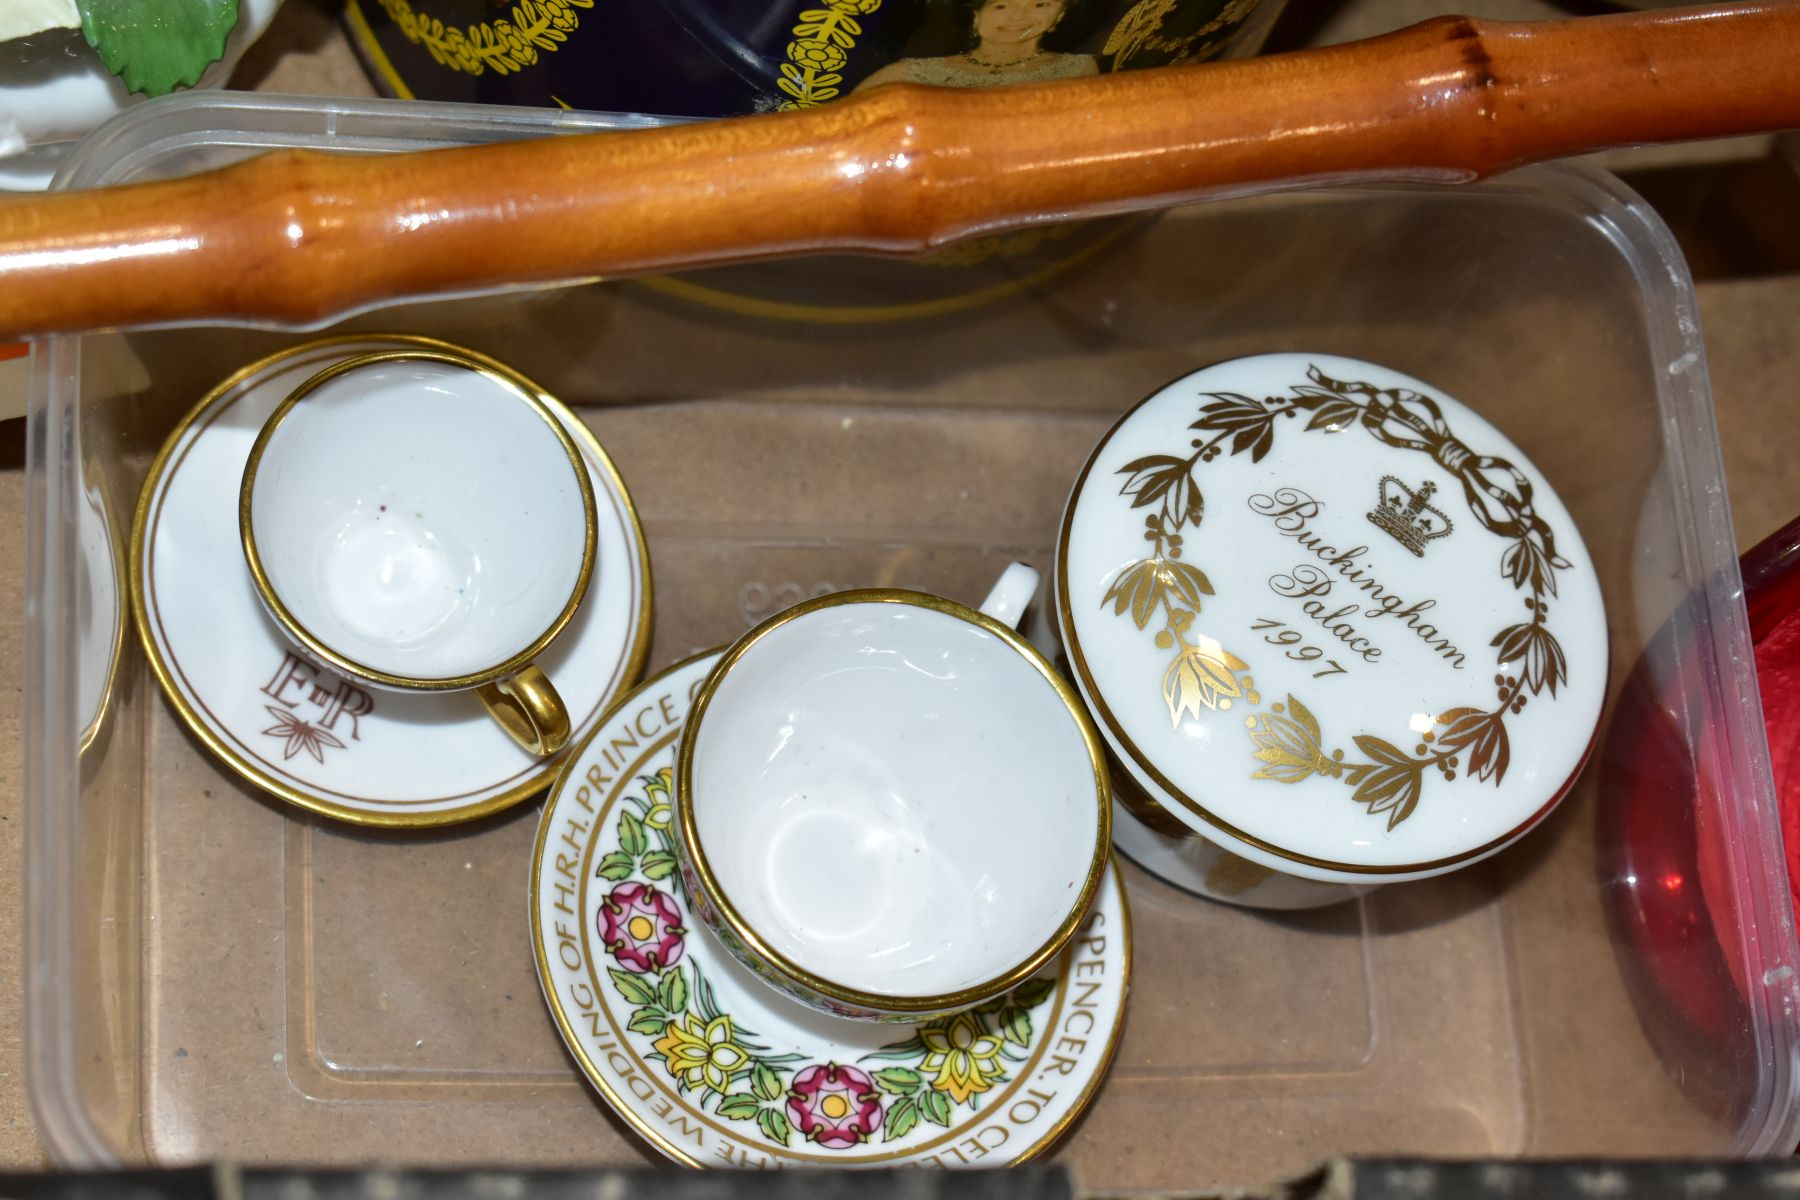 TWO BOXES OF CERAMICS AND SUNDRY ITEMS, ETC, to include Mayfair bone china part dinner service, - Image 4 of 10